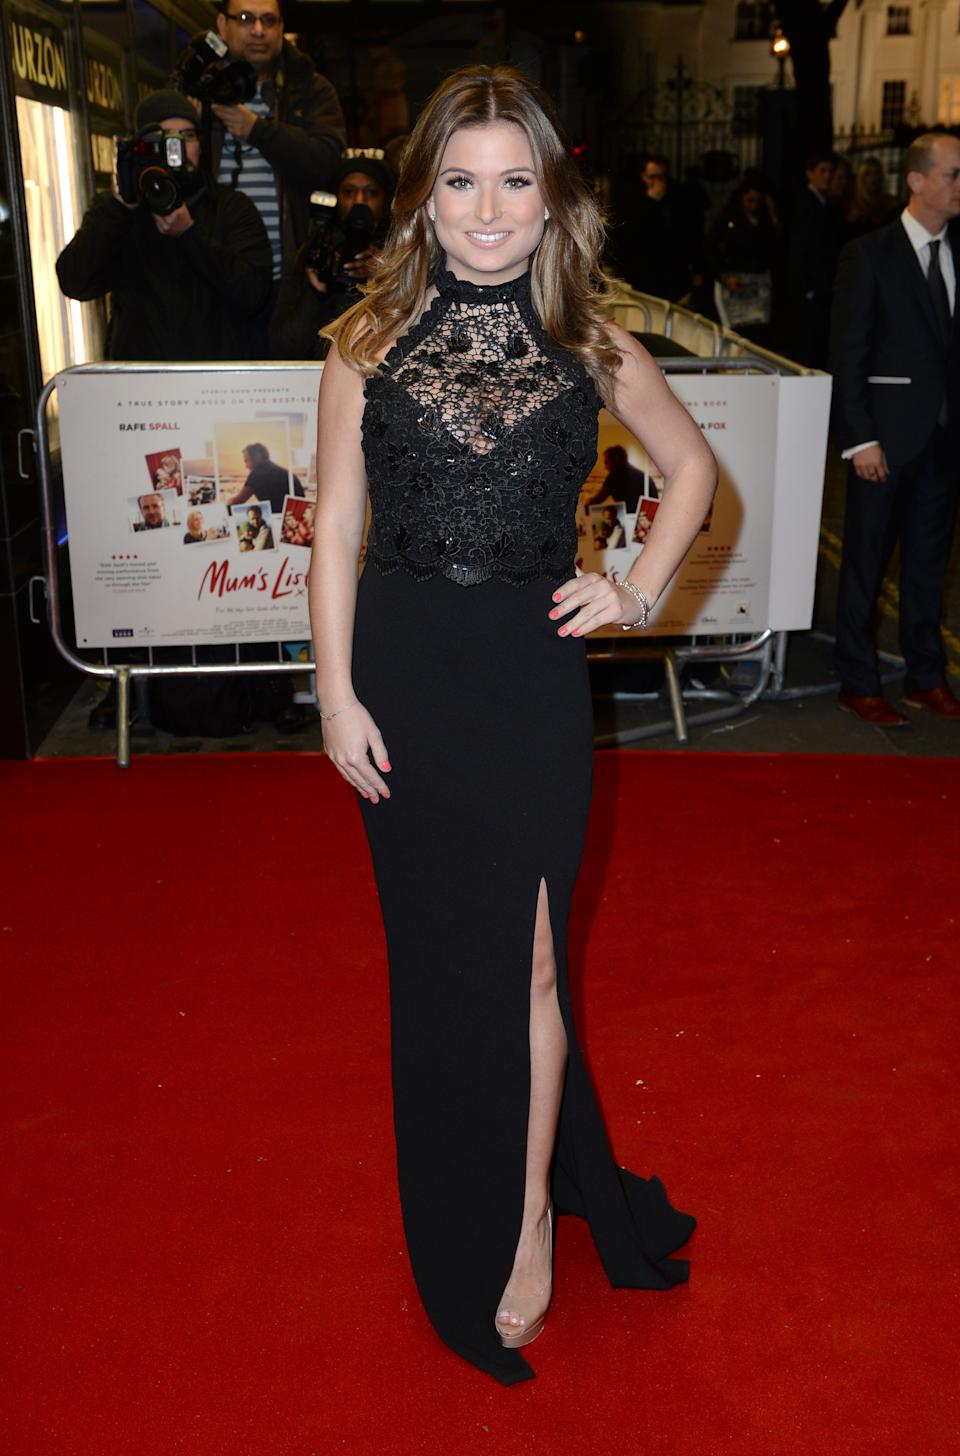 Zara Holland arriving at the UK Premiere of Mum's List, Curzon Cinema, London. Photo credit should read: Doug Peters/EMPICS Entertainment